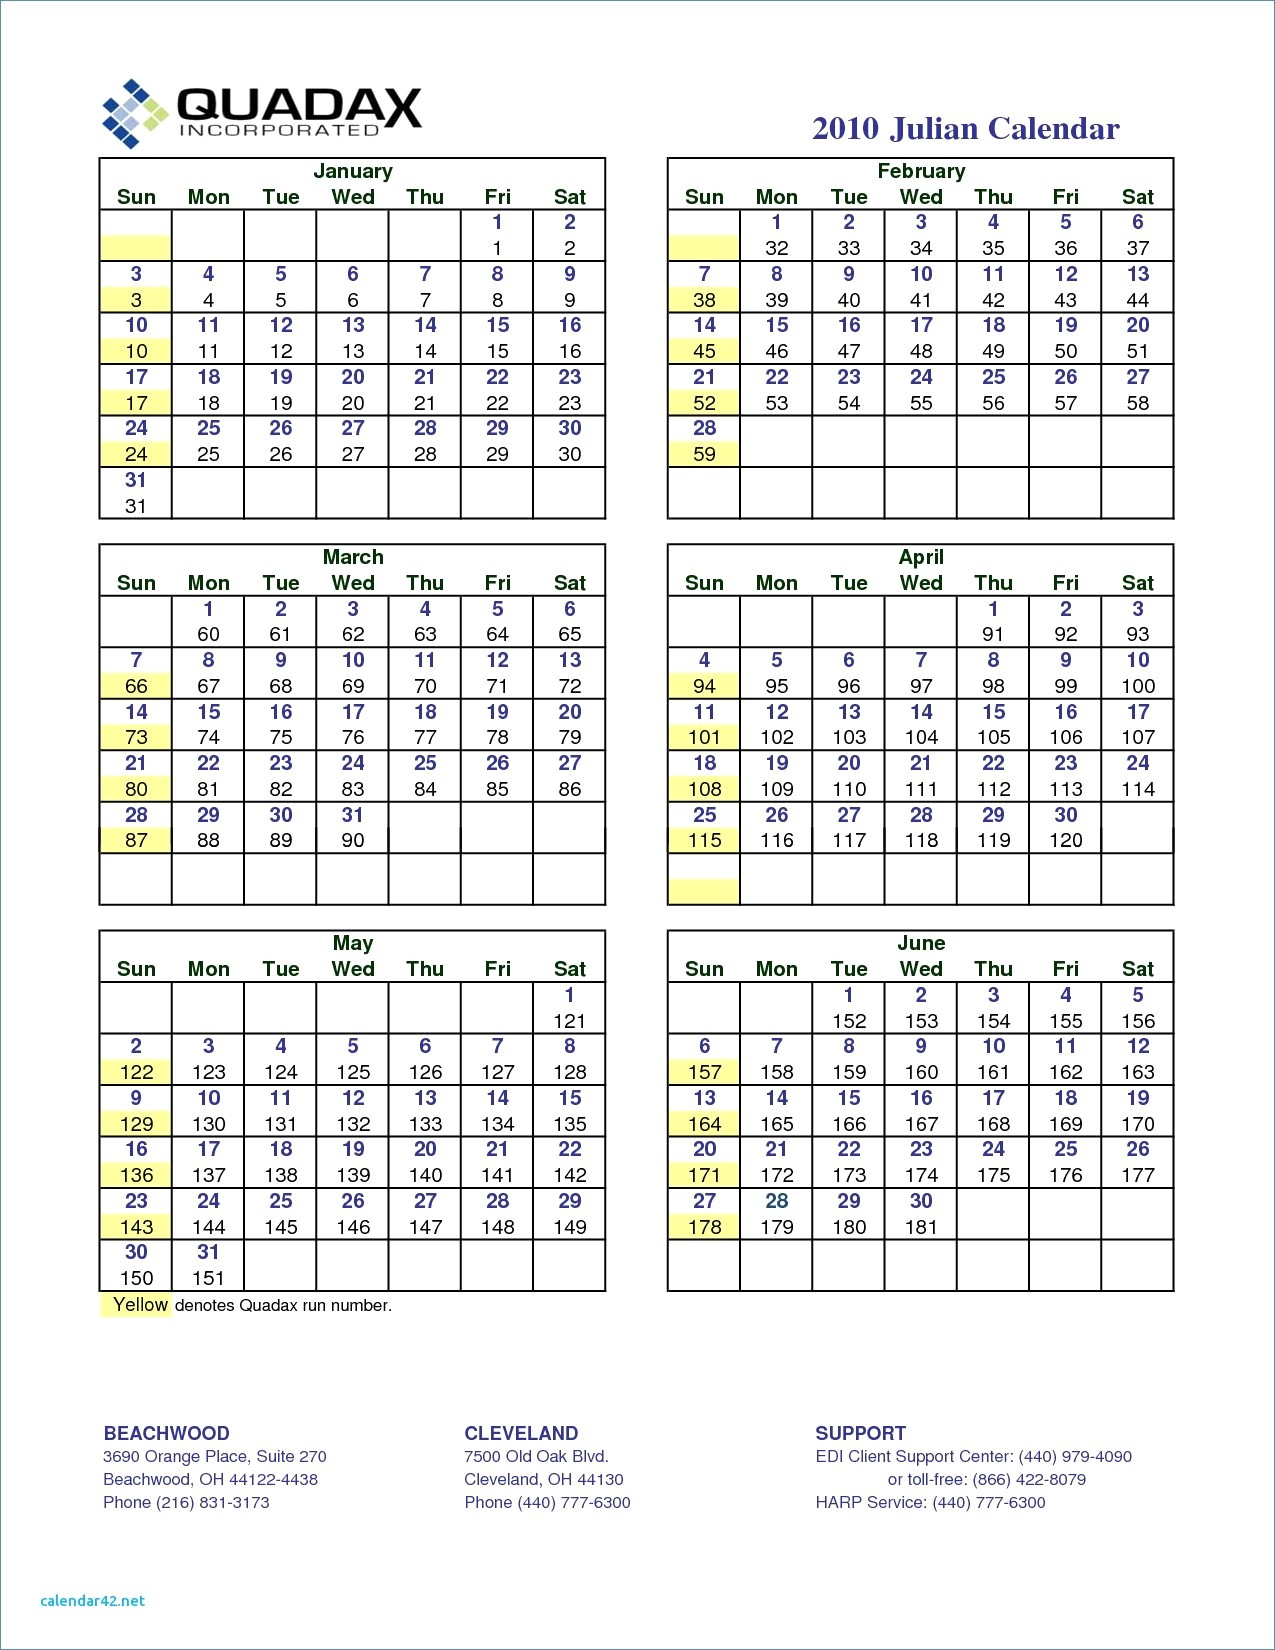 Quadax Julian Calendar | Jcreview